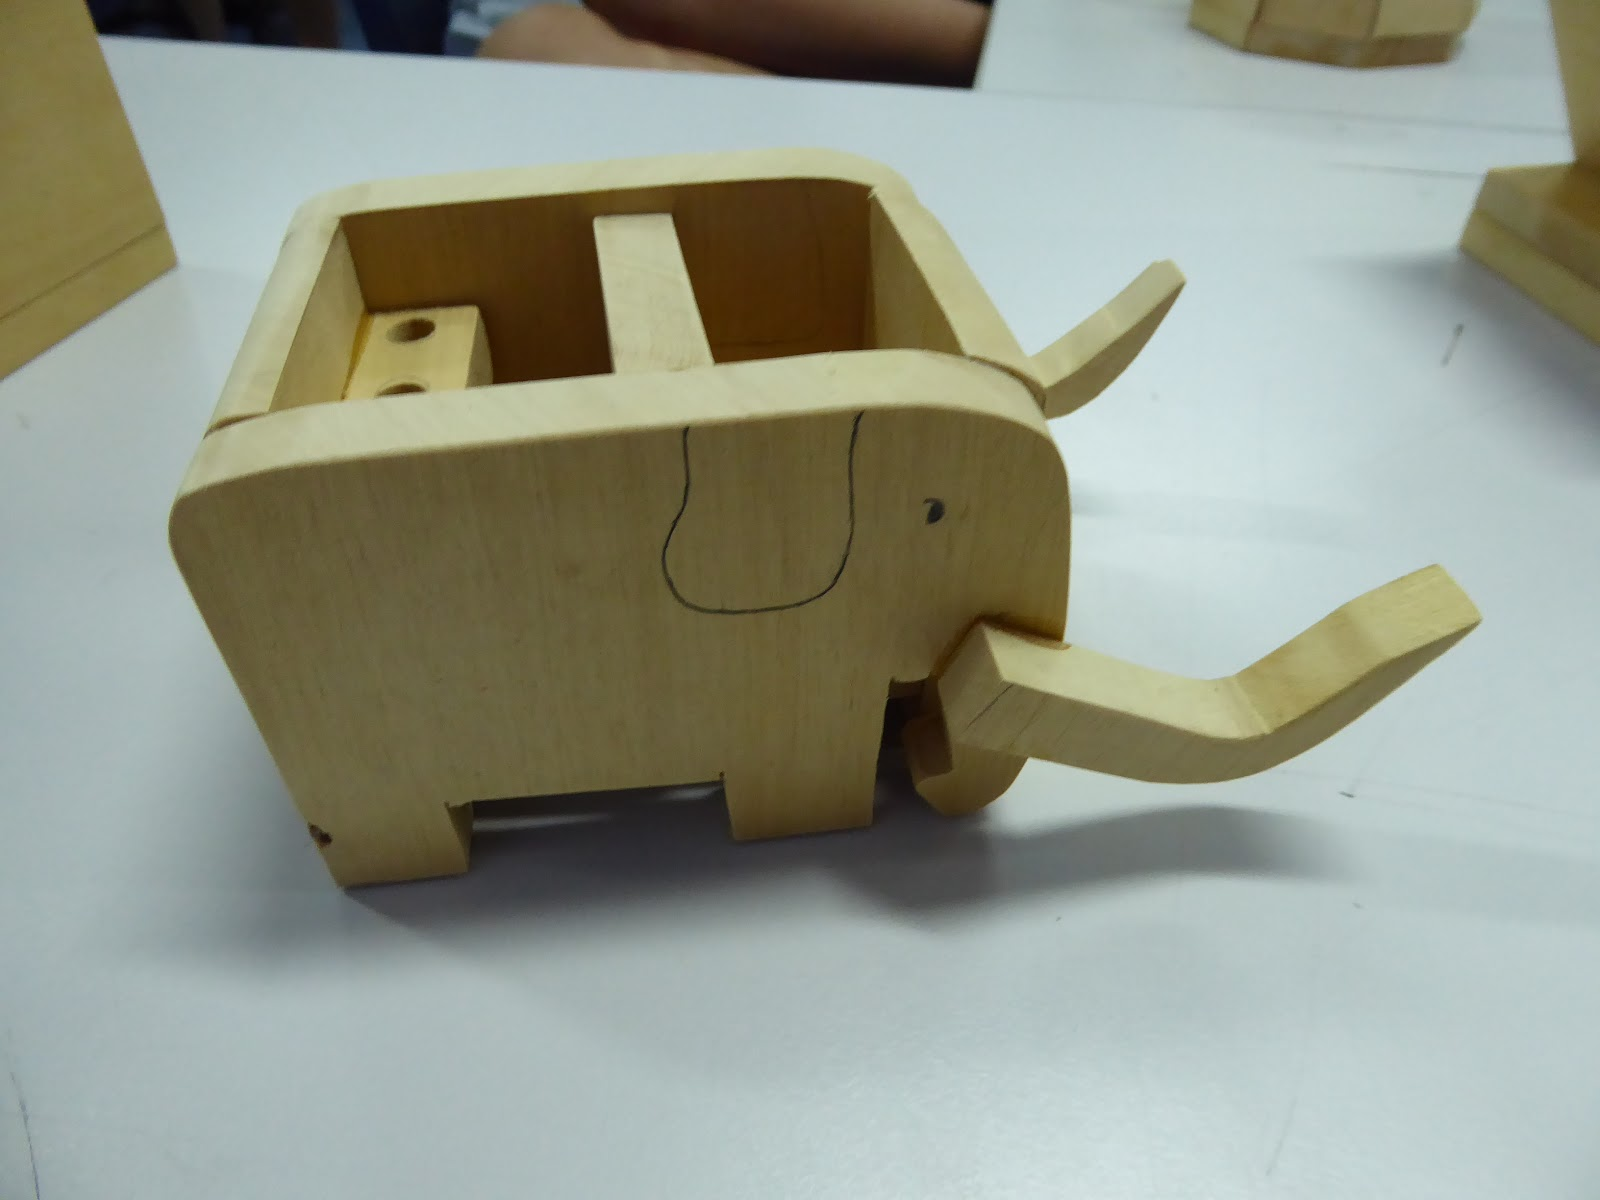 Fun With Design And Technology Secondary 1 Desk Tidy Using Wood Material